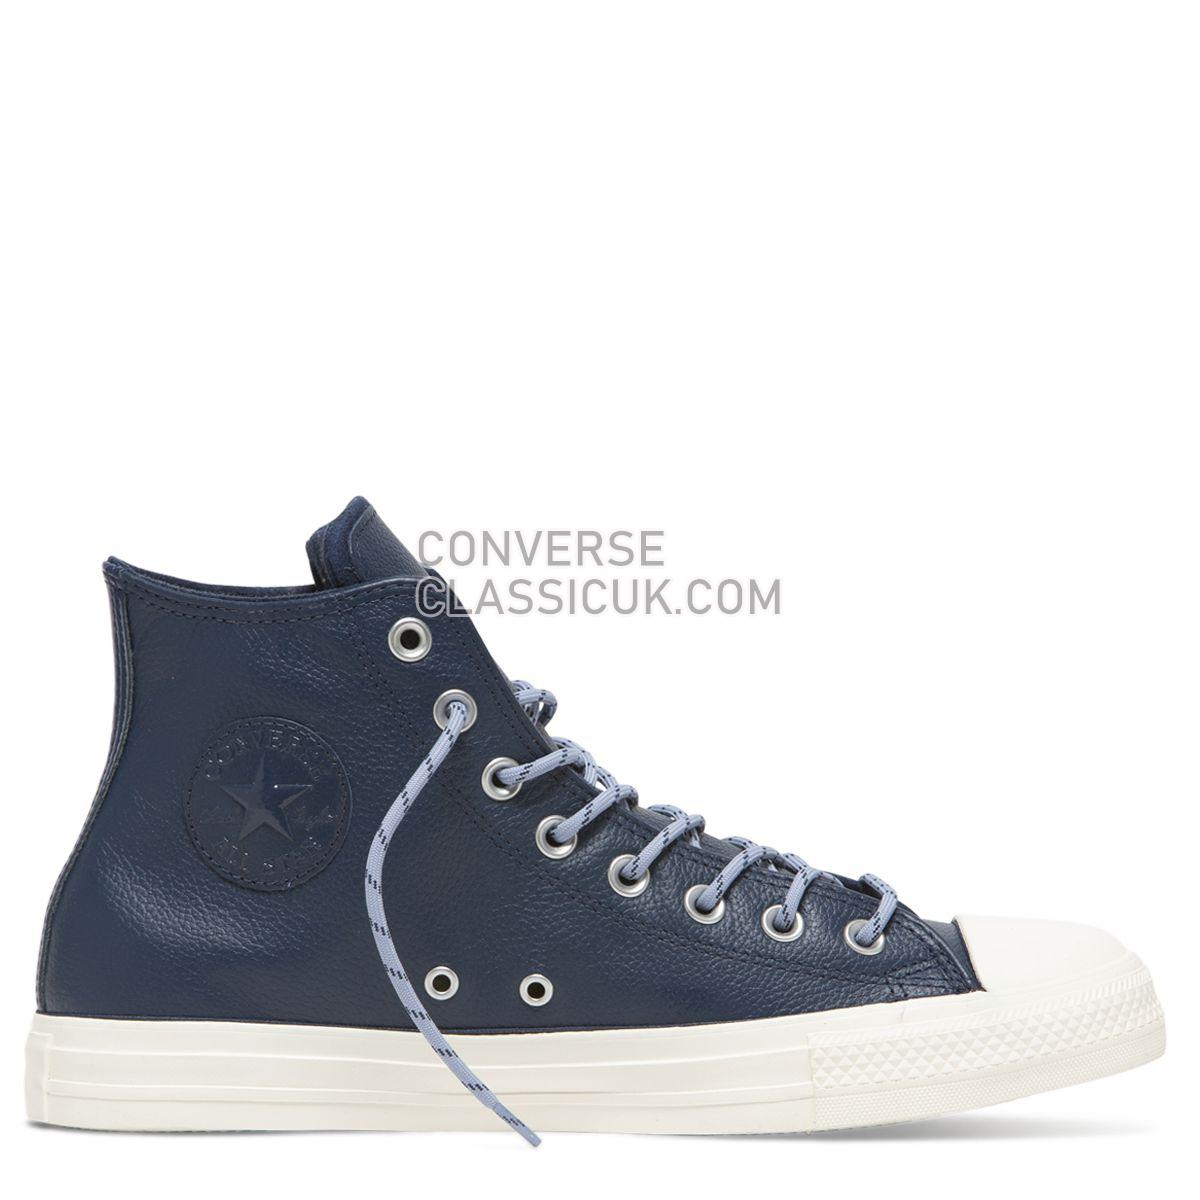 Converse Chuck Taylor All Star Limo Leather High Top Navy Mens Womens Unisex 163338 Navy/Indigo Fog/Egret Shoes